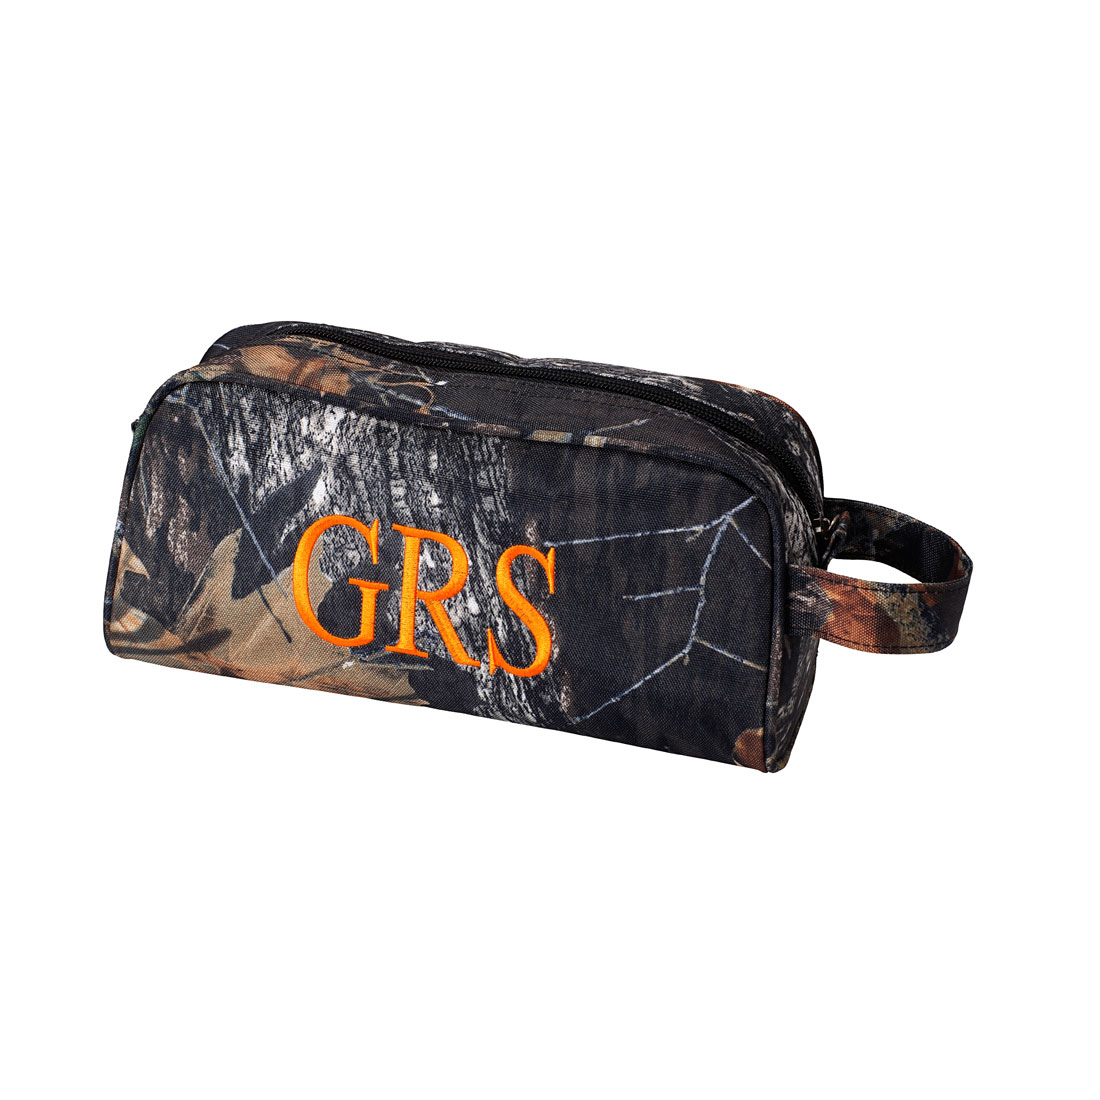 Woods Toiletry Bag